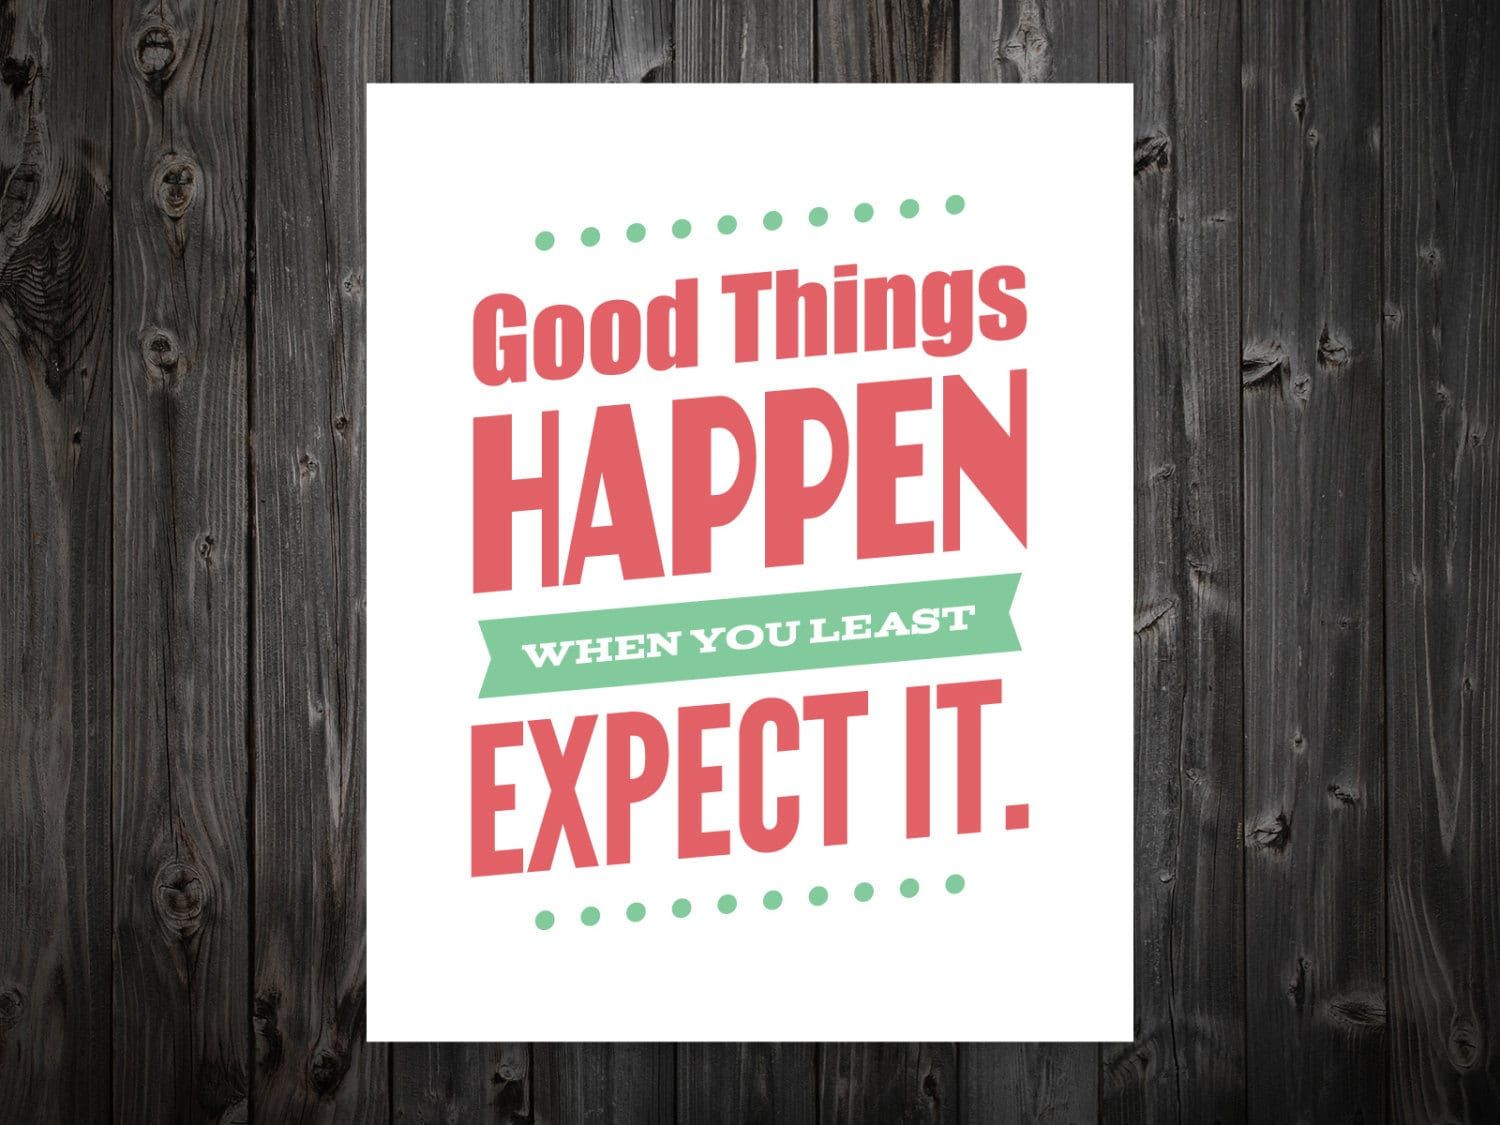 Good Things Happen When You Least Expect It Inspire Inspiration